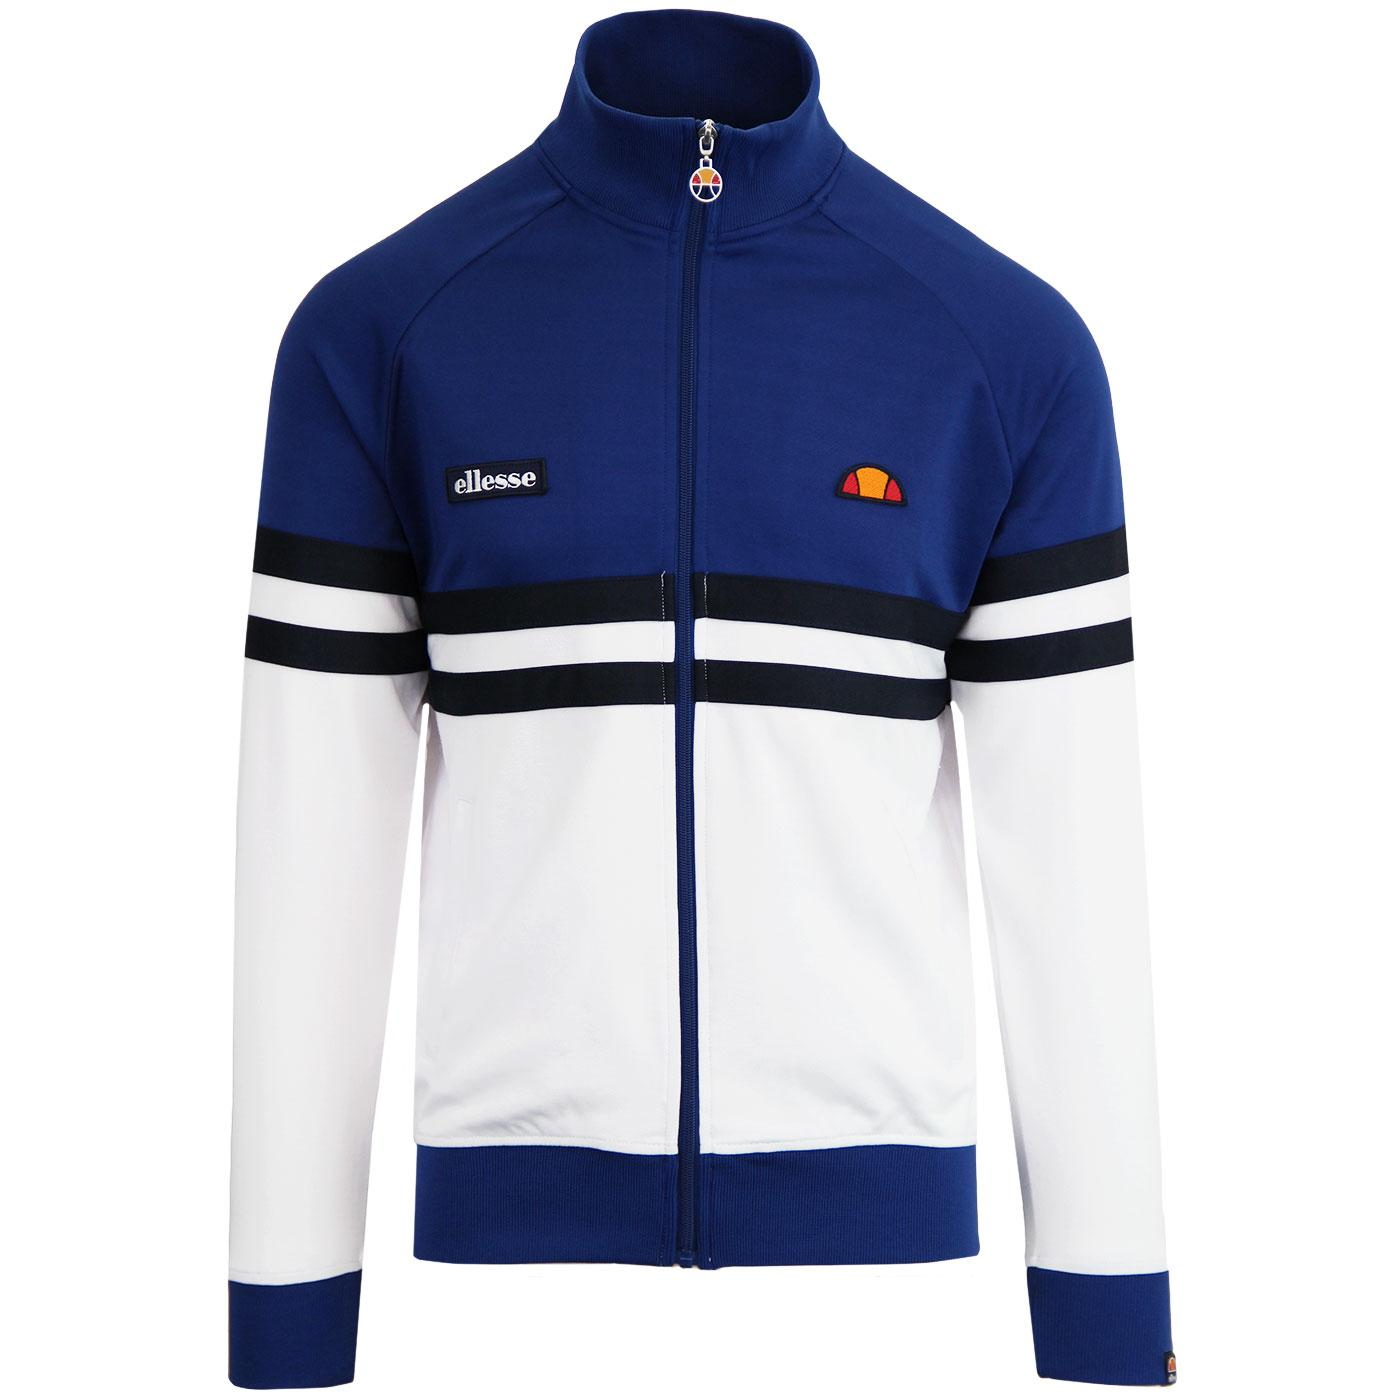 Rimini ELLESSE Retro 80s Casuals Track Top (MB)